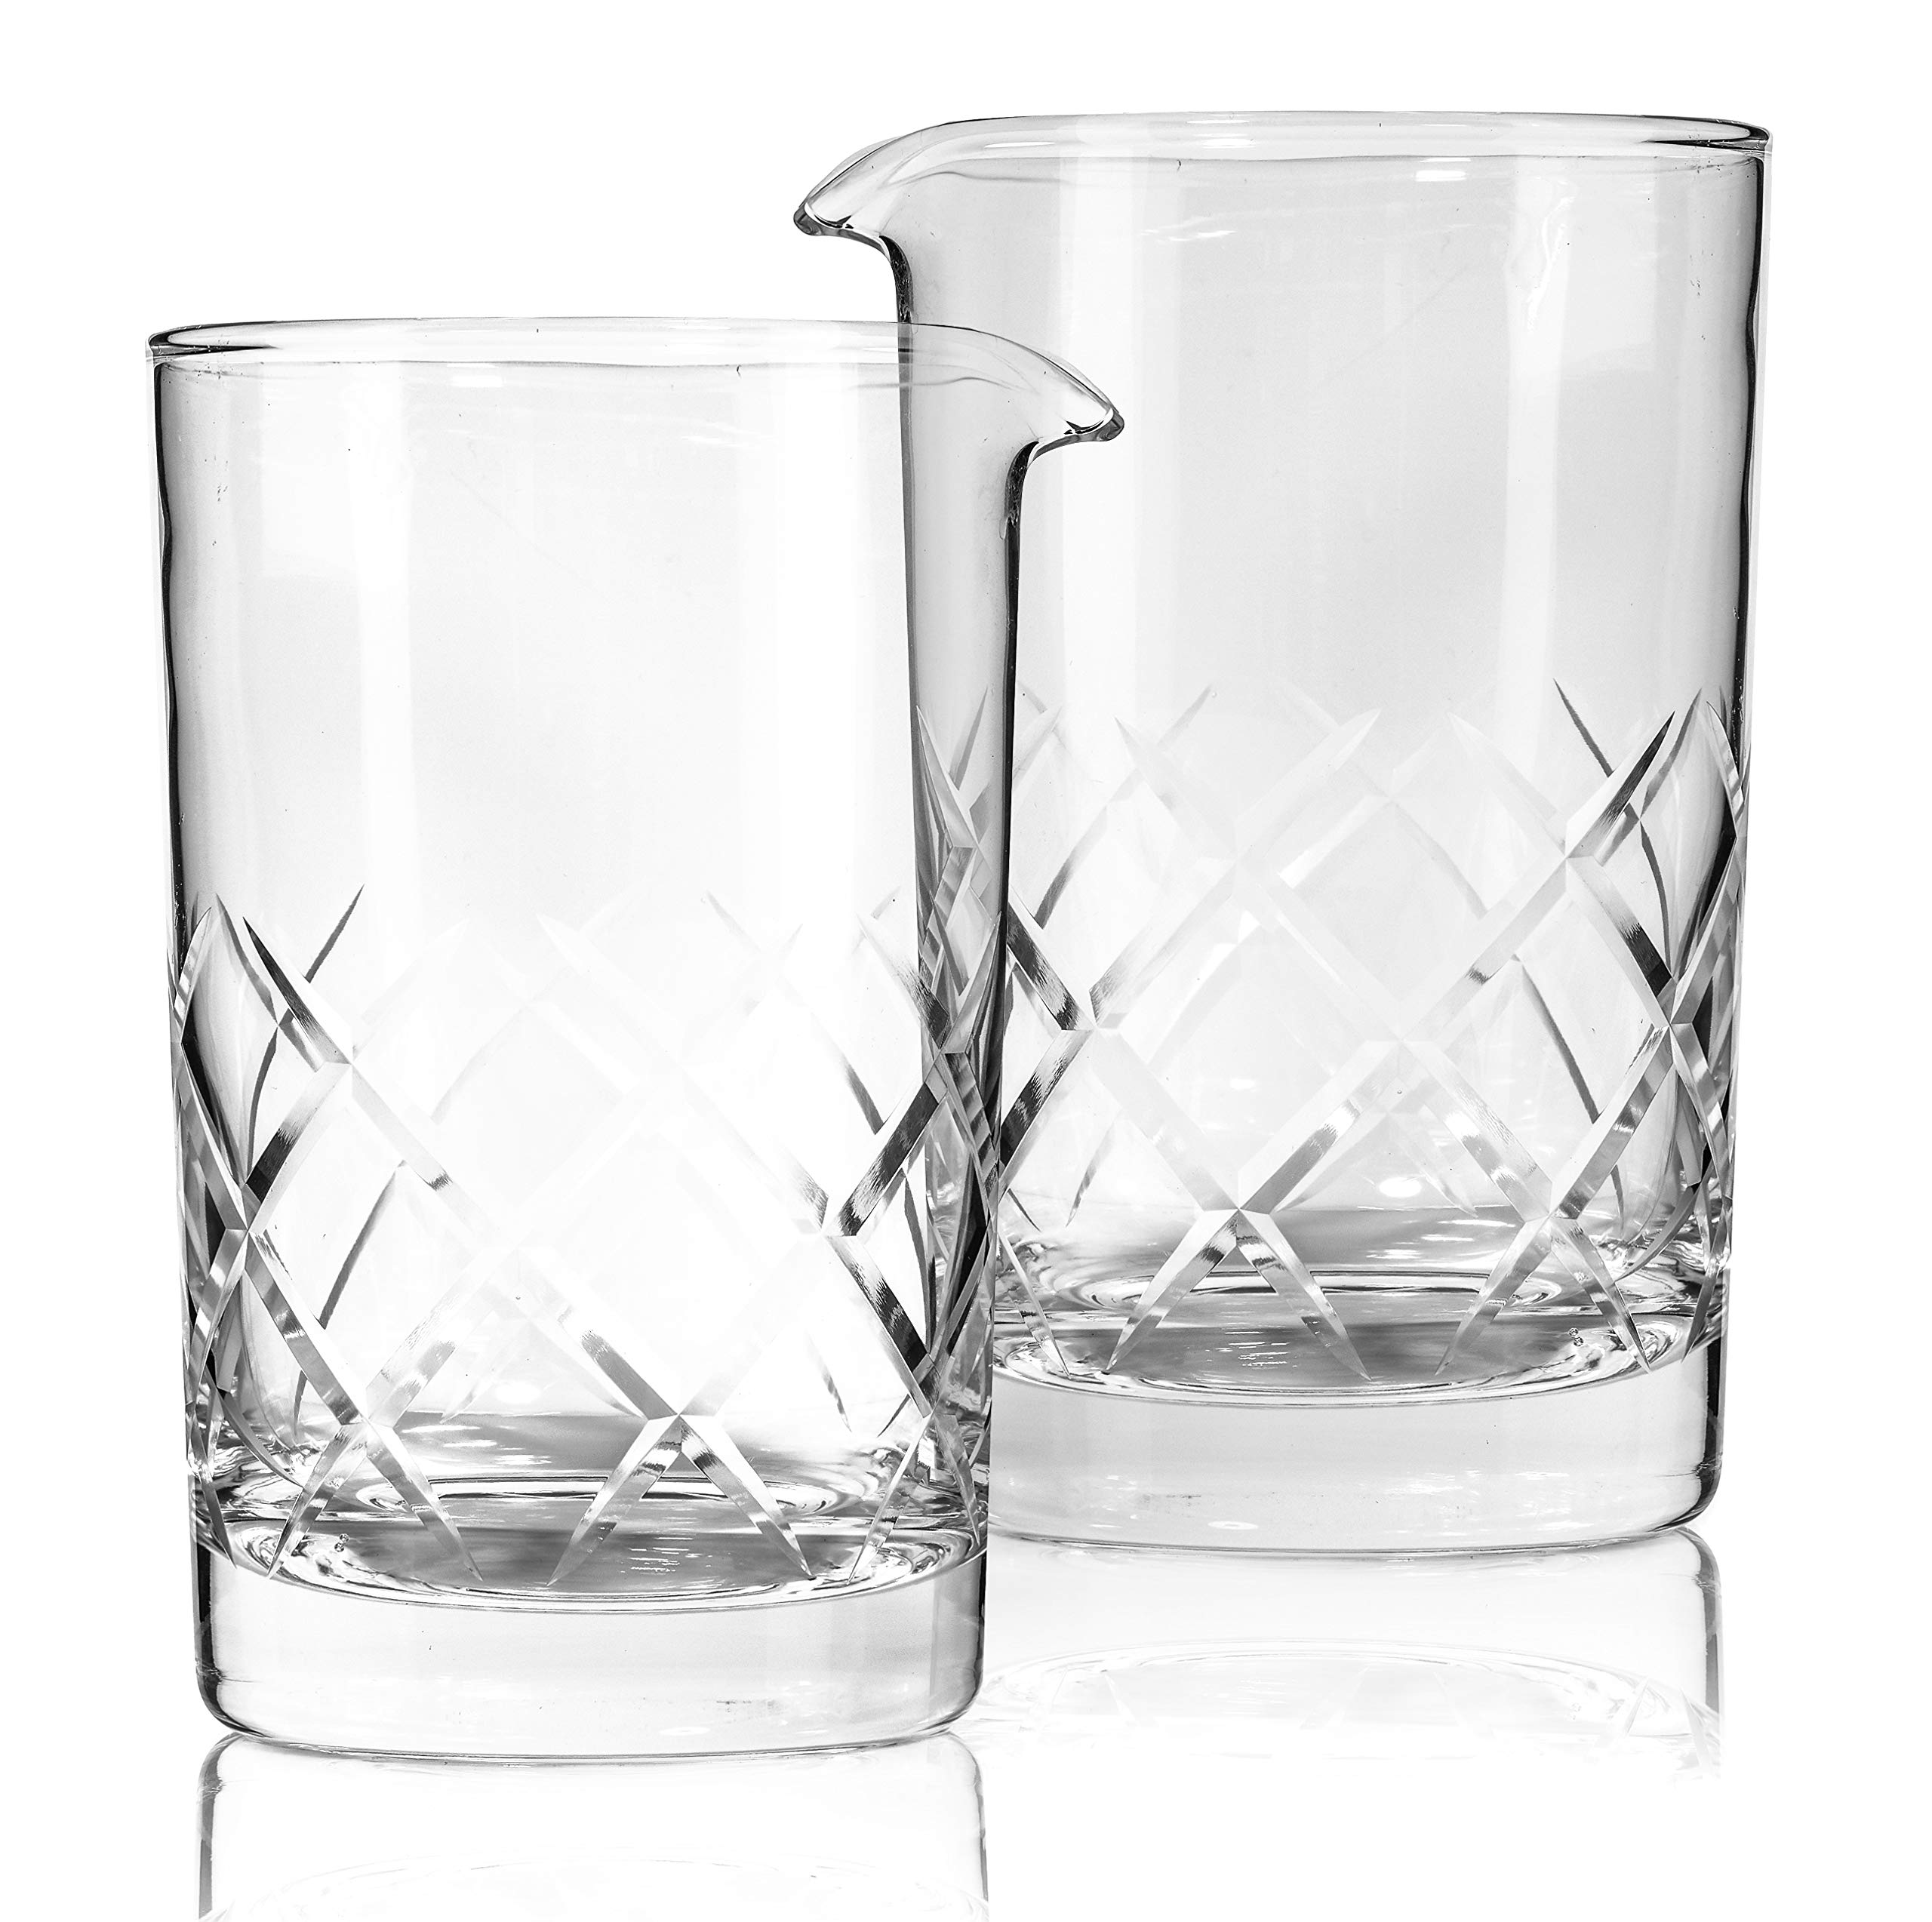 Set of 2 Cocktail Mixing Glass - Thick Weighted Bottom - Large 24oz 700ml by Bezrat